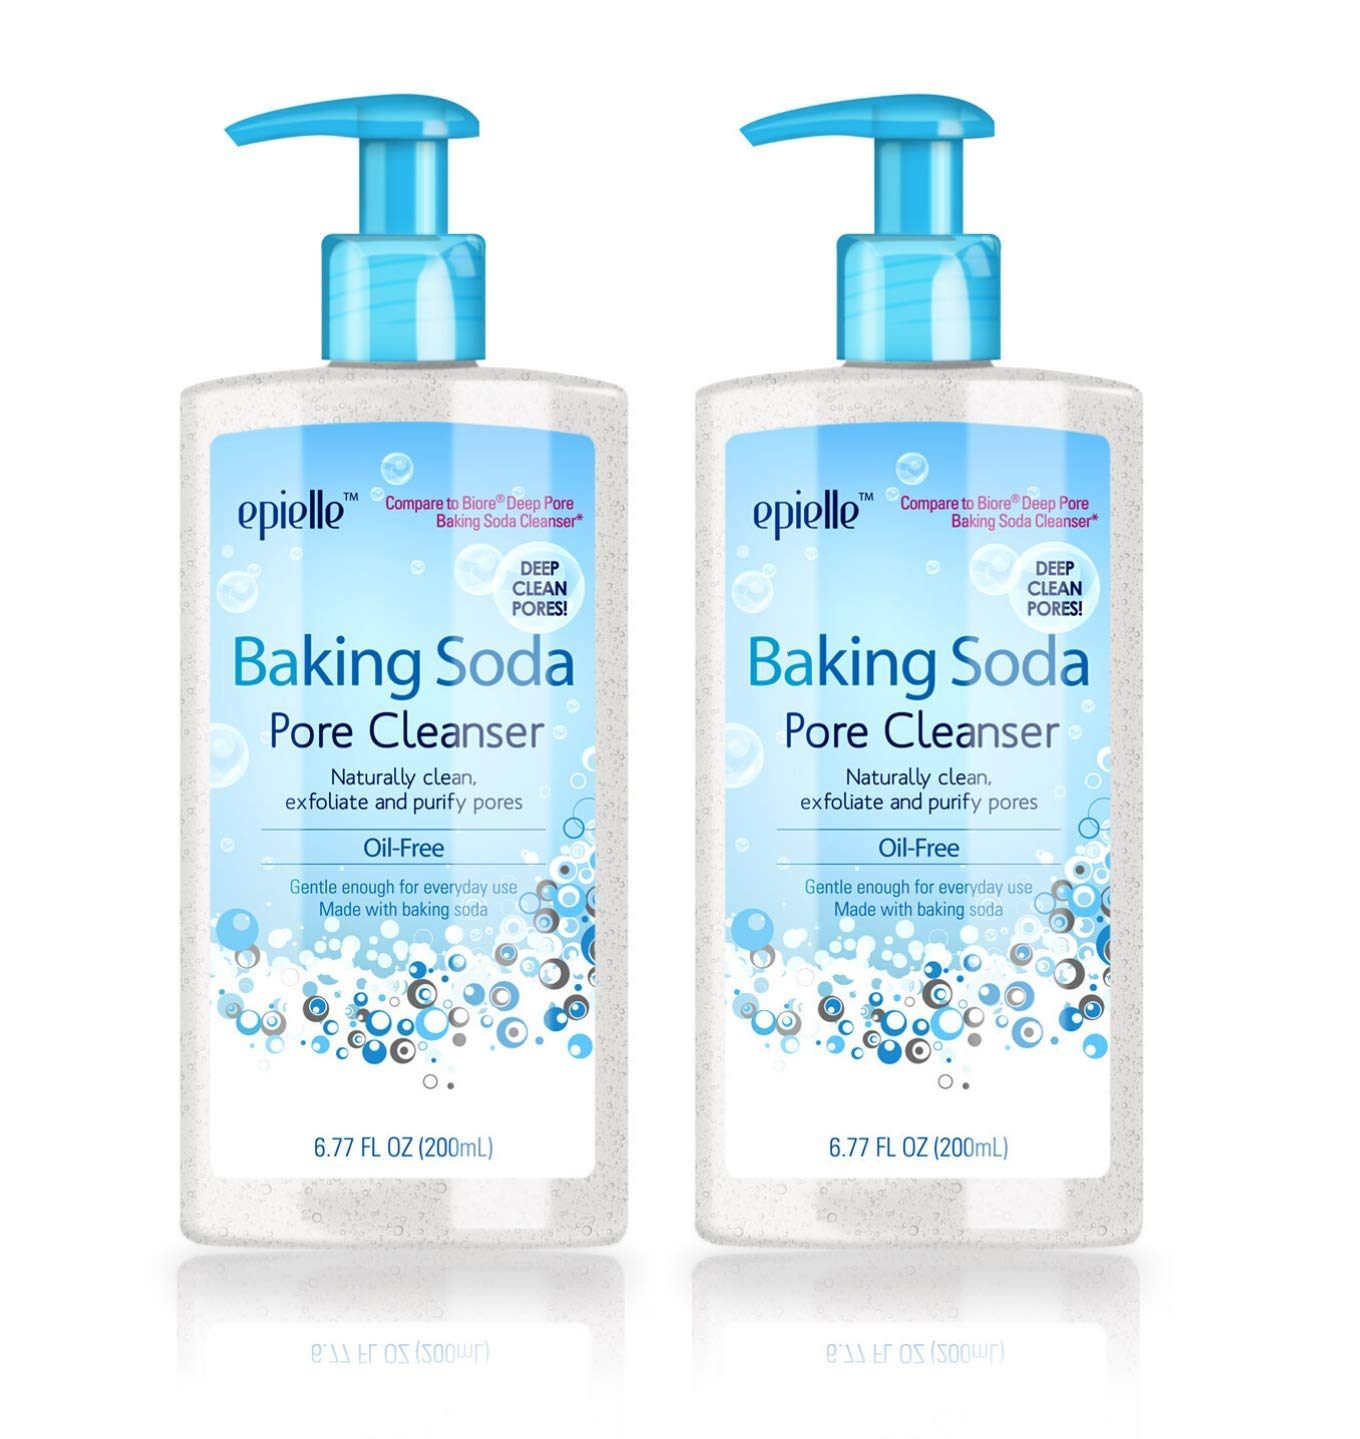 Epielle Baking Soda Pore Cleanser   Great for Maskne   Facial Cleanser   Face Wash for Oily Skin   Detoxify and Purify   Exfoliate Dead Cells   Oil-Free Deep Pore Cleanser   6.77 FL OZ   2 Pack